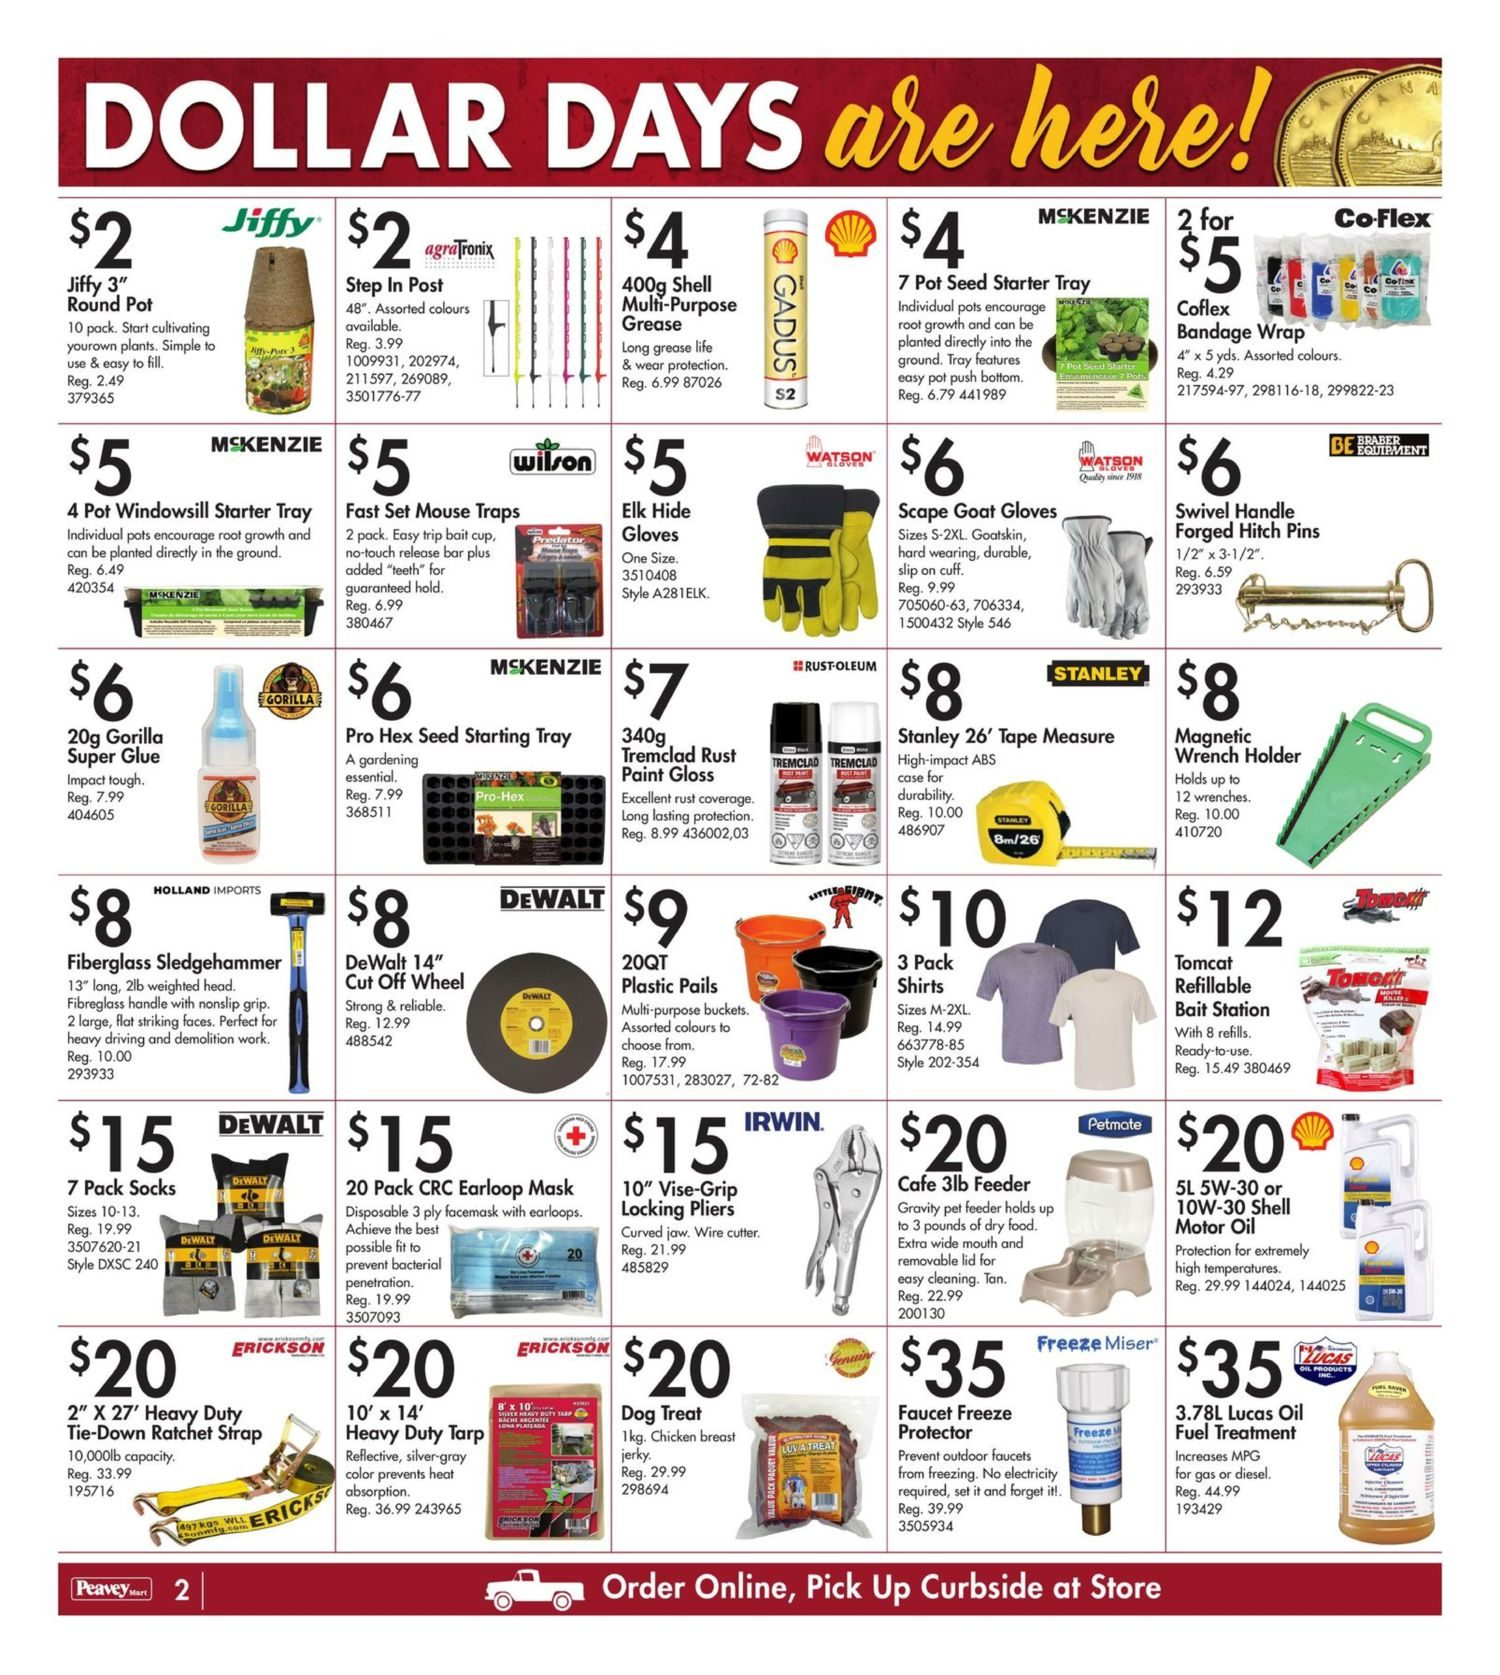 Peavey Mart - Weekly Deals - Dollar Days Are Here - Page 3